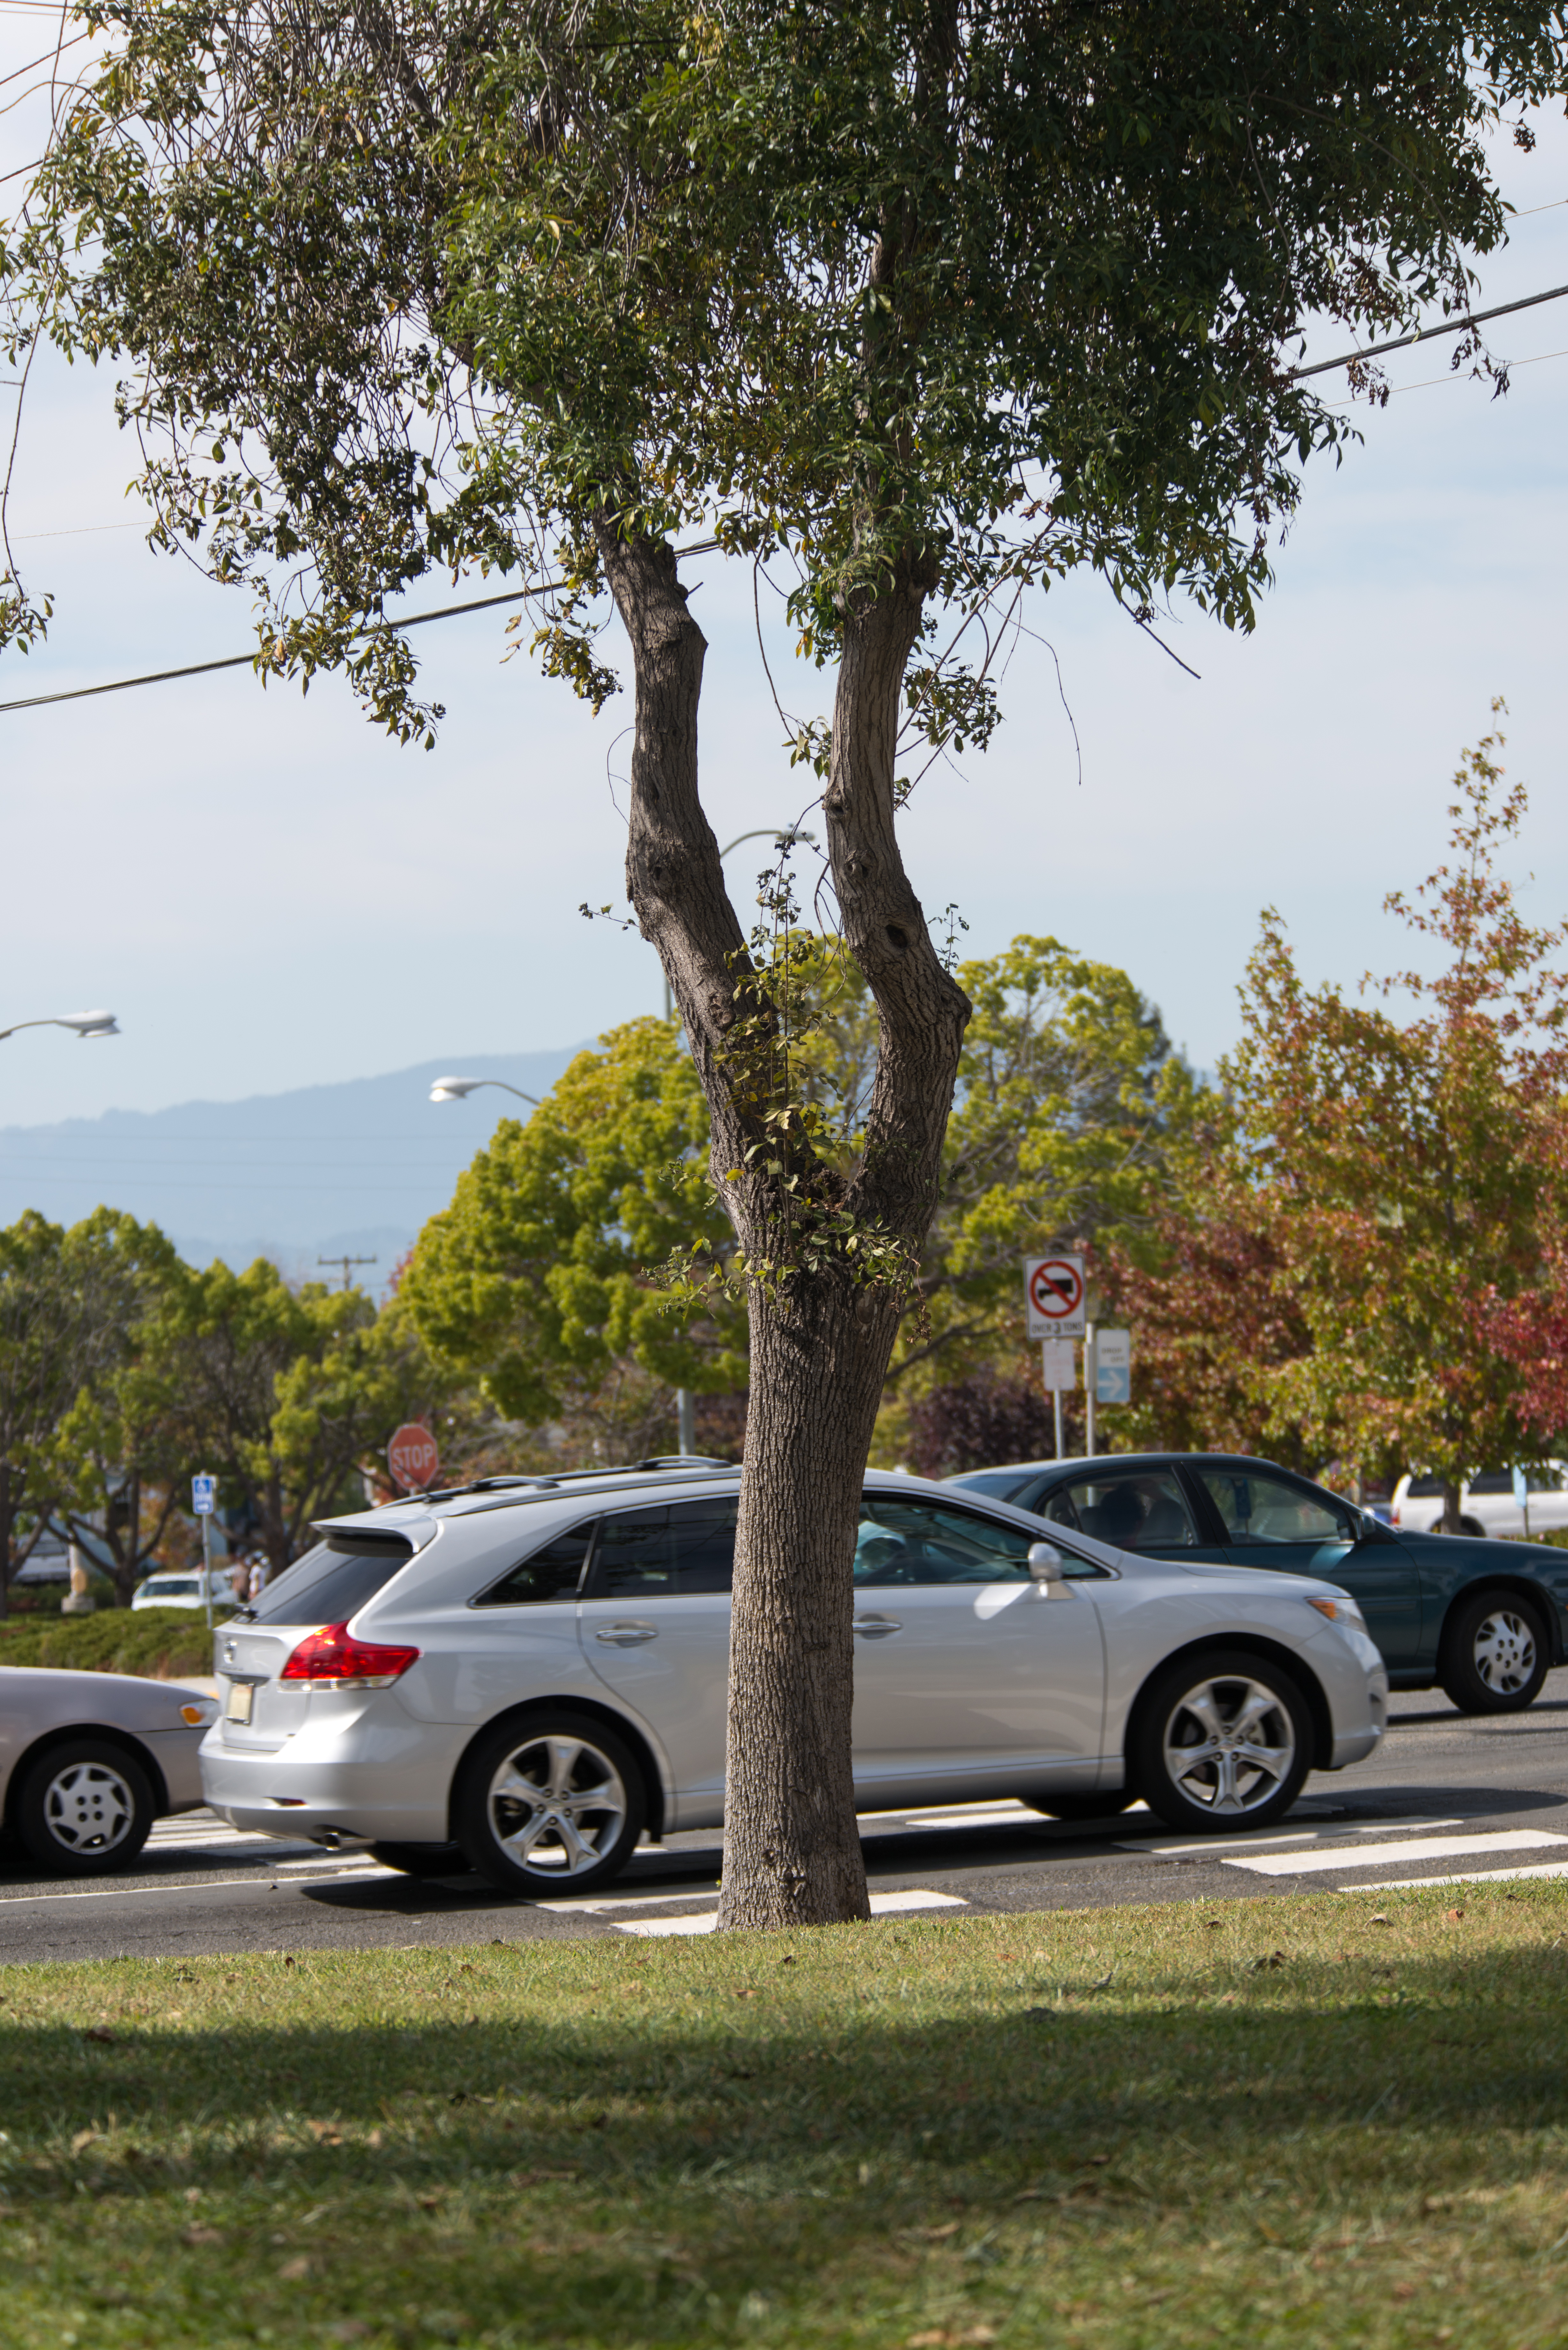 Tree in ohlone park in front of road with stopped cars photo